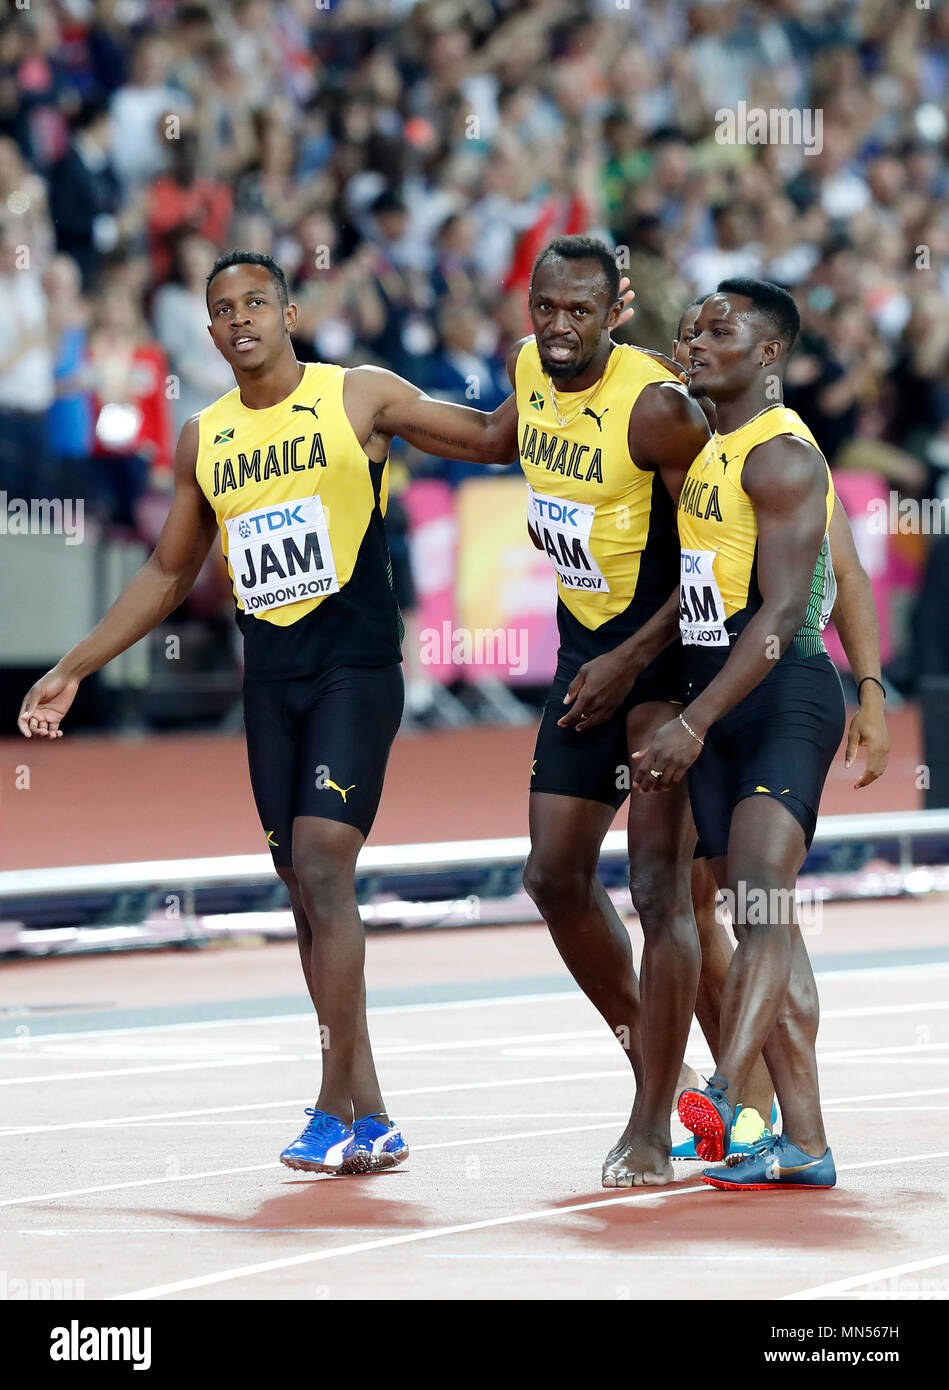 LONDON, ENGLAND - AUGUST 12: Usain Bolt of Jamaica leaving with team mates Tyquendo Tracey, Julian Forte and Michael Campbell after falling in the Men's 4x100 Relay final during day nine of the 16th IAAF World Athletics Championships London 2017 at The London Stadium on August 12, 2017 in London, United Kingdom --- Image by © Paul Cunningham - Stock Image